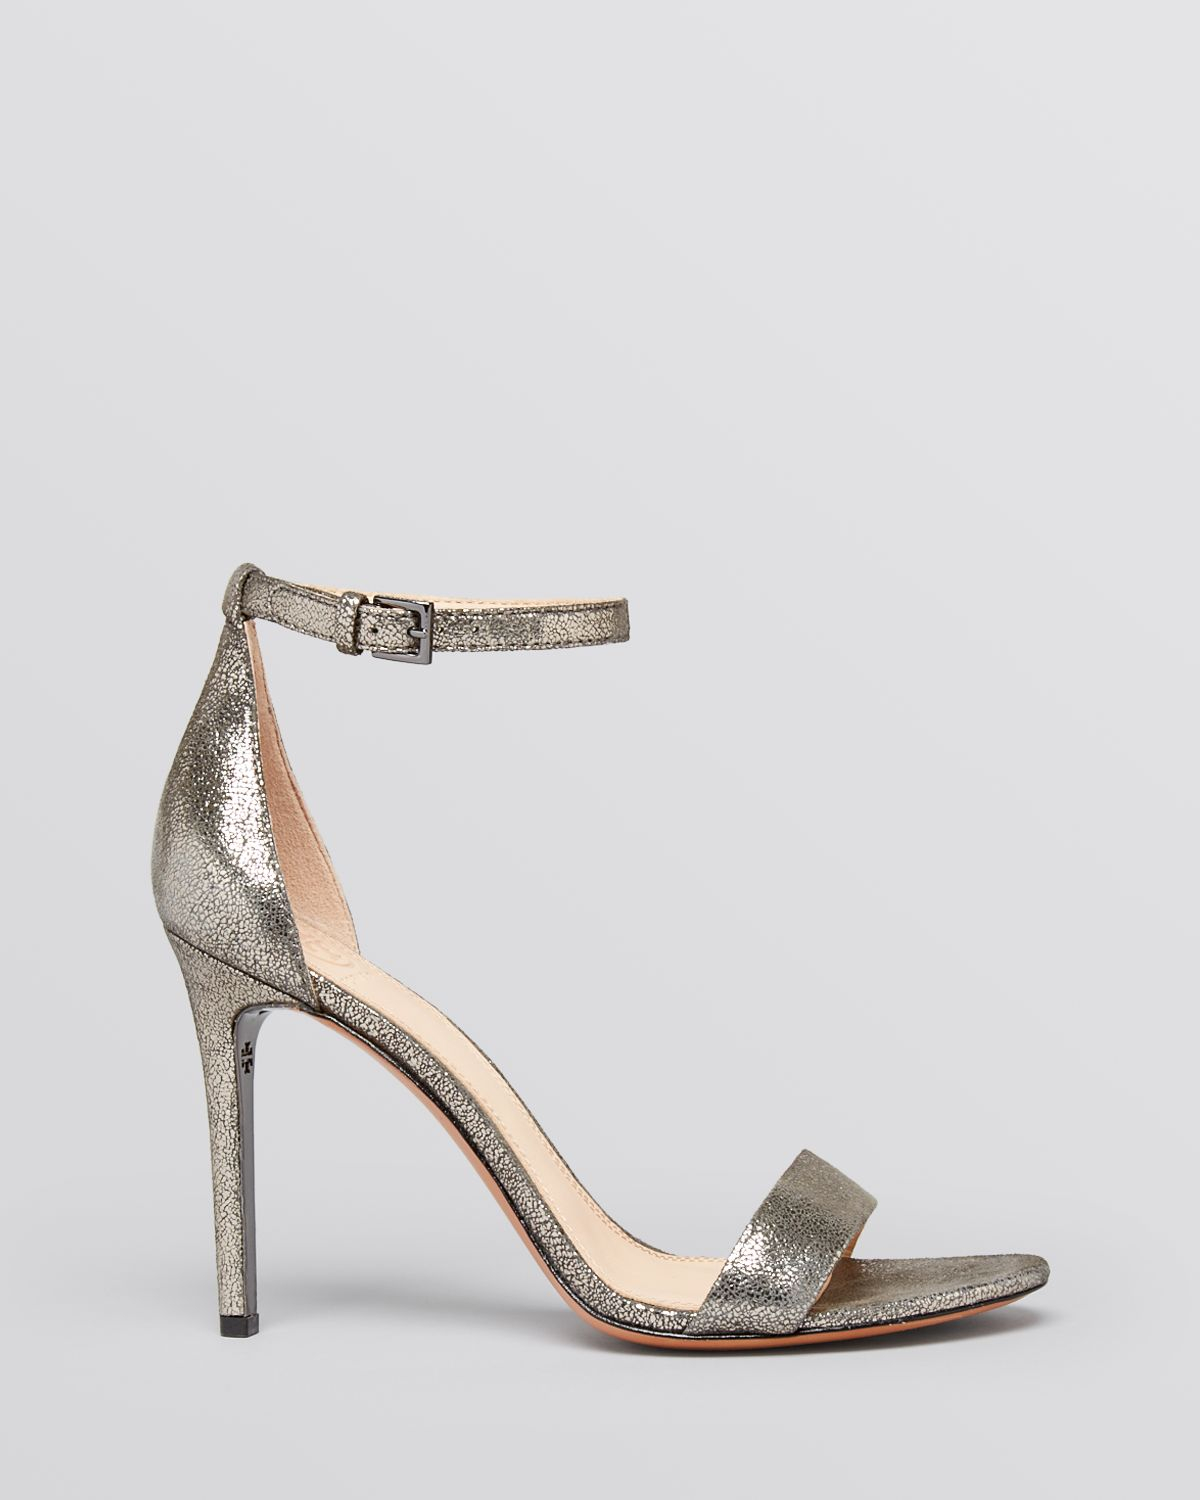 8a93e0dfe Lyst - Tory Burch Open Toe Ankle Strap Evening Sandals - Keri High ...